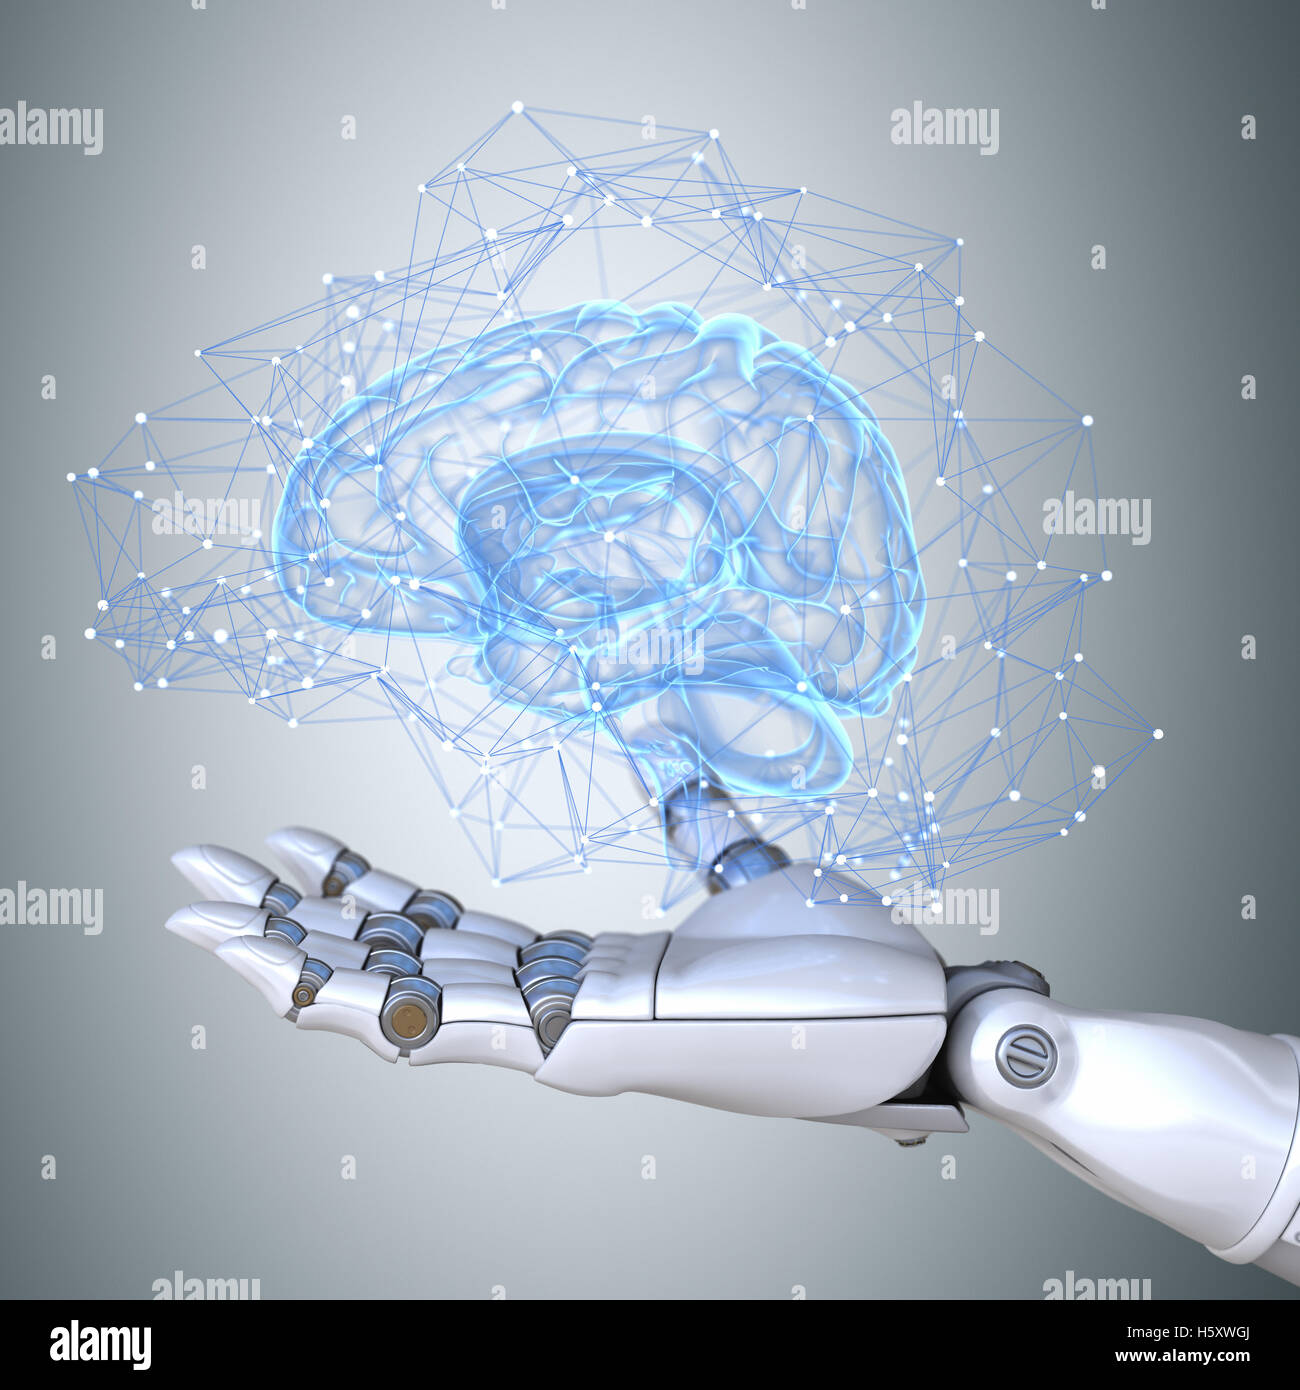 Tenir la main robot cerveau virtuel scheme Photo Stock